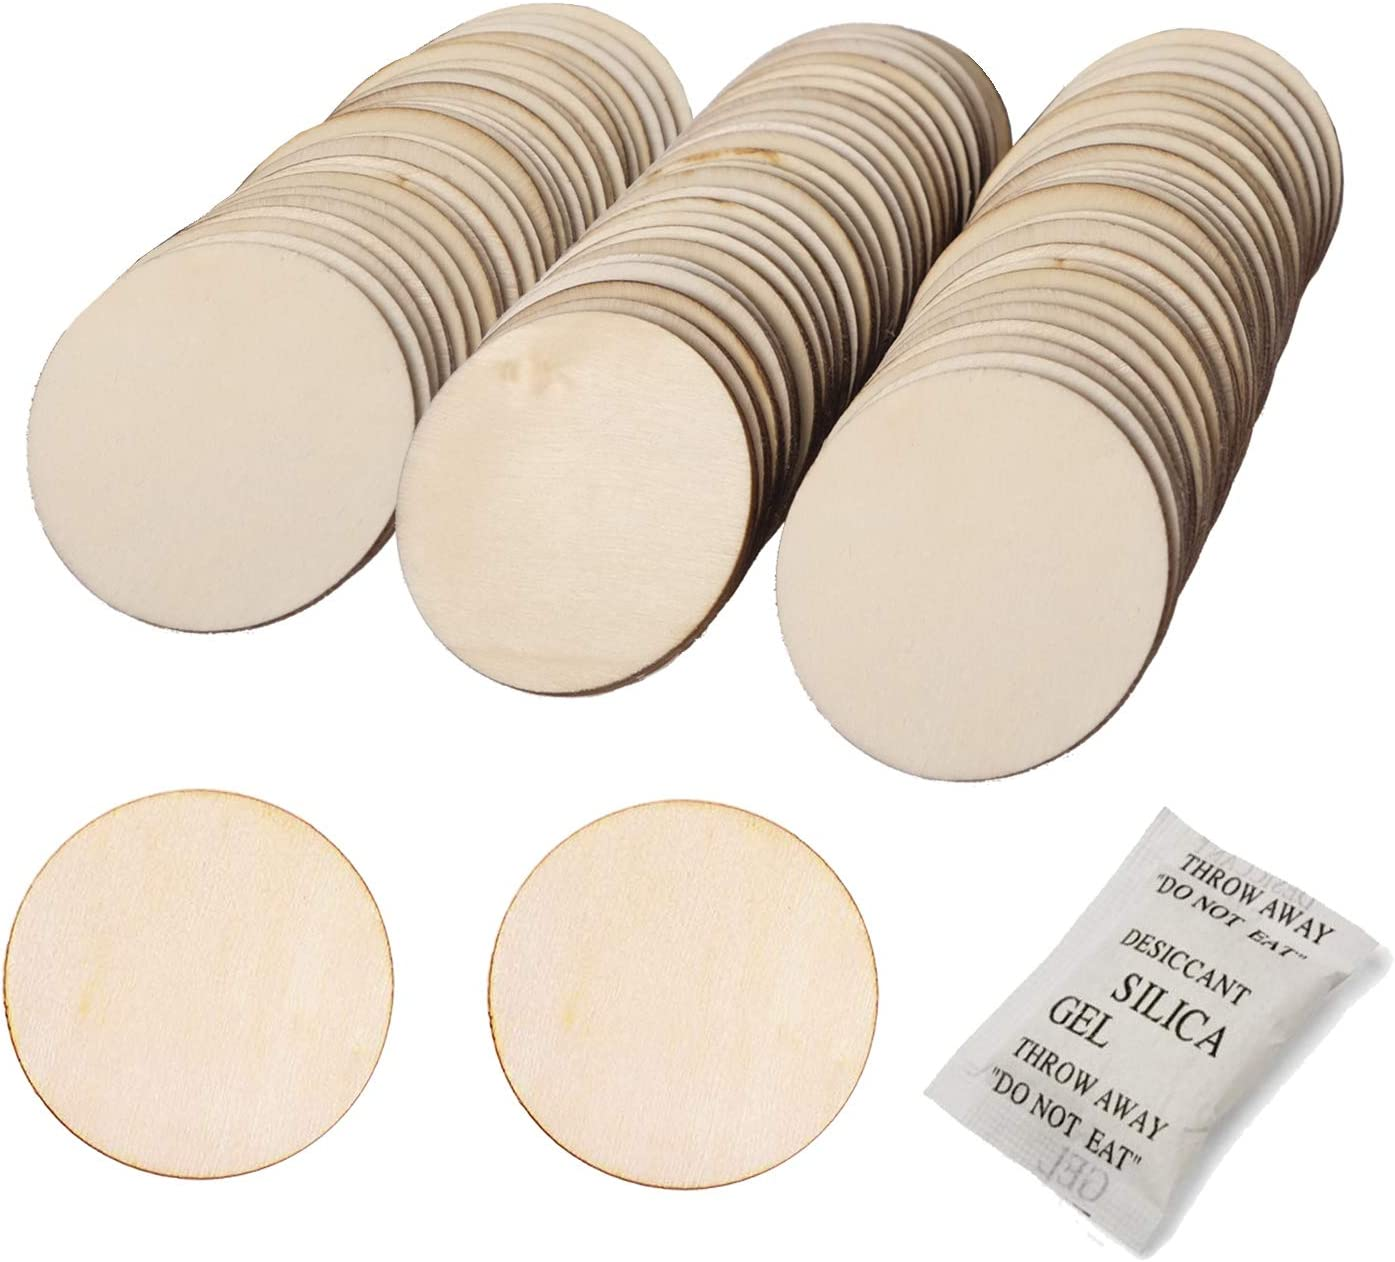 Decoration 120 Pieces 12inchx15pcs School Project Arroyner 12 Small Wood Circles Round Wood Discs DIY Unfinished Round Blank Wooden for Crafts